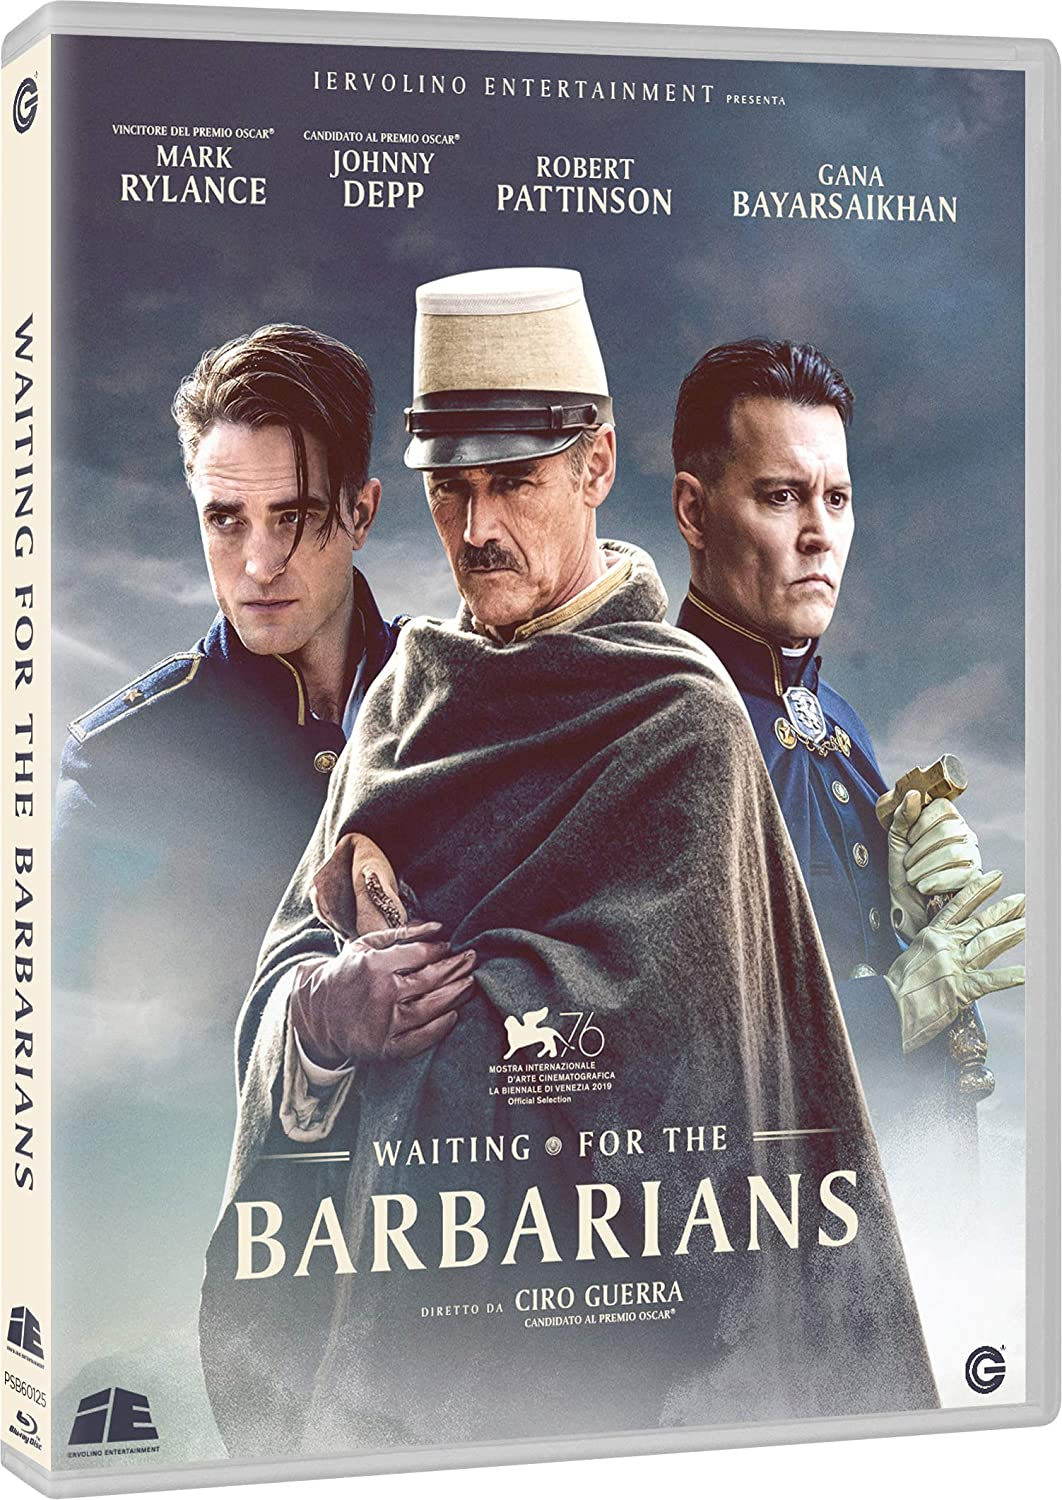 WAITING FOR THE BARBARIANS - BLU RAY